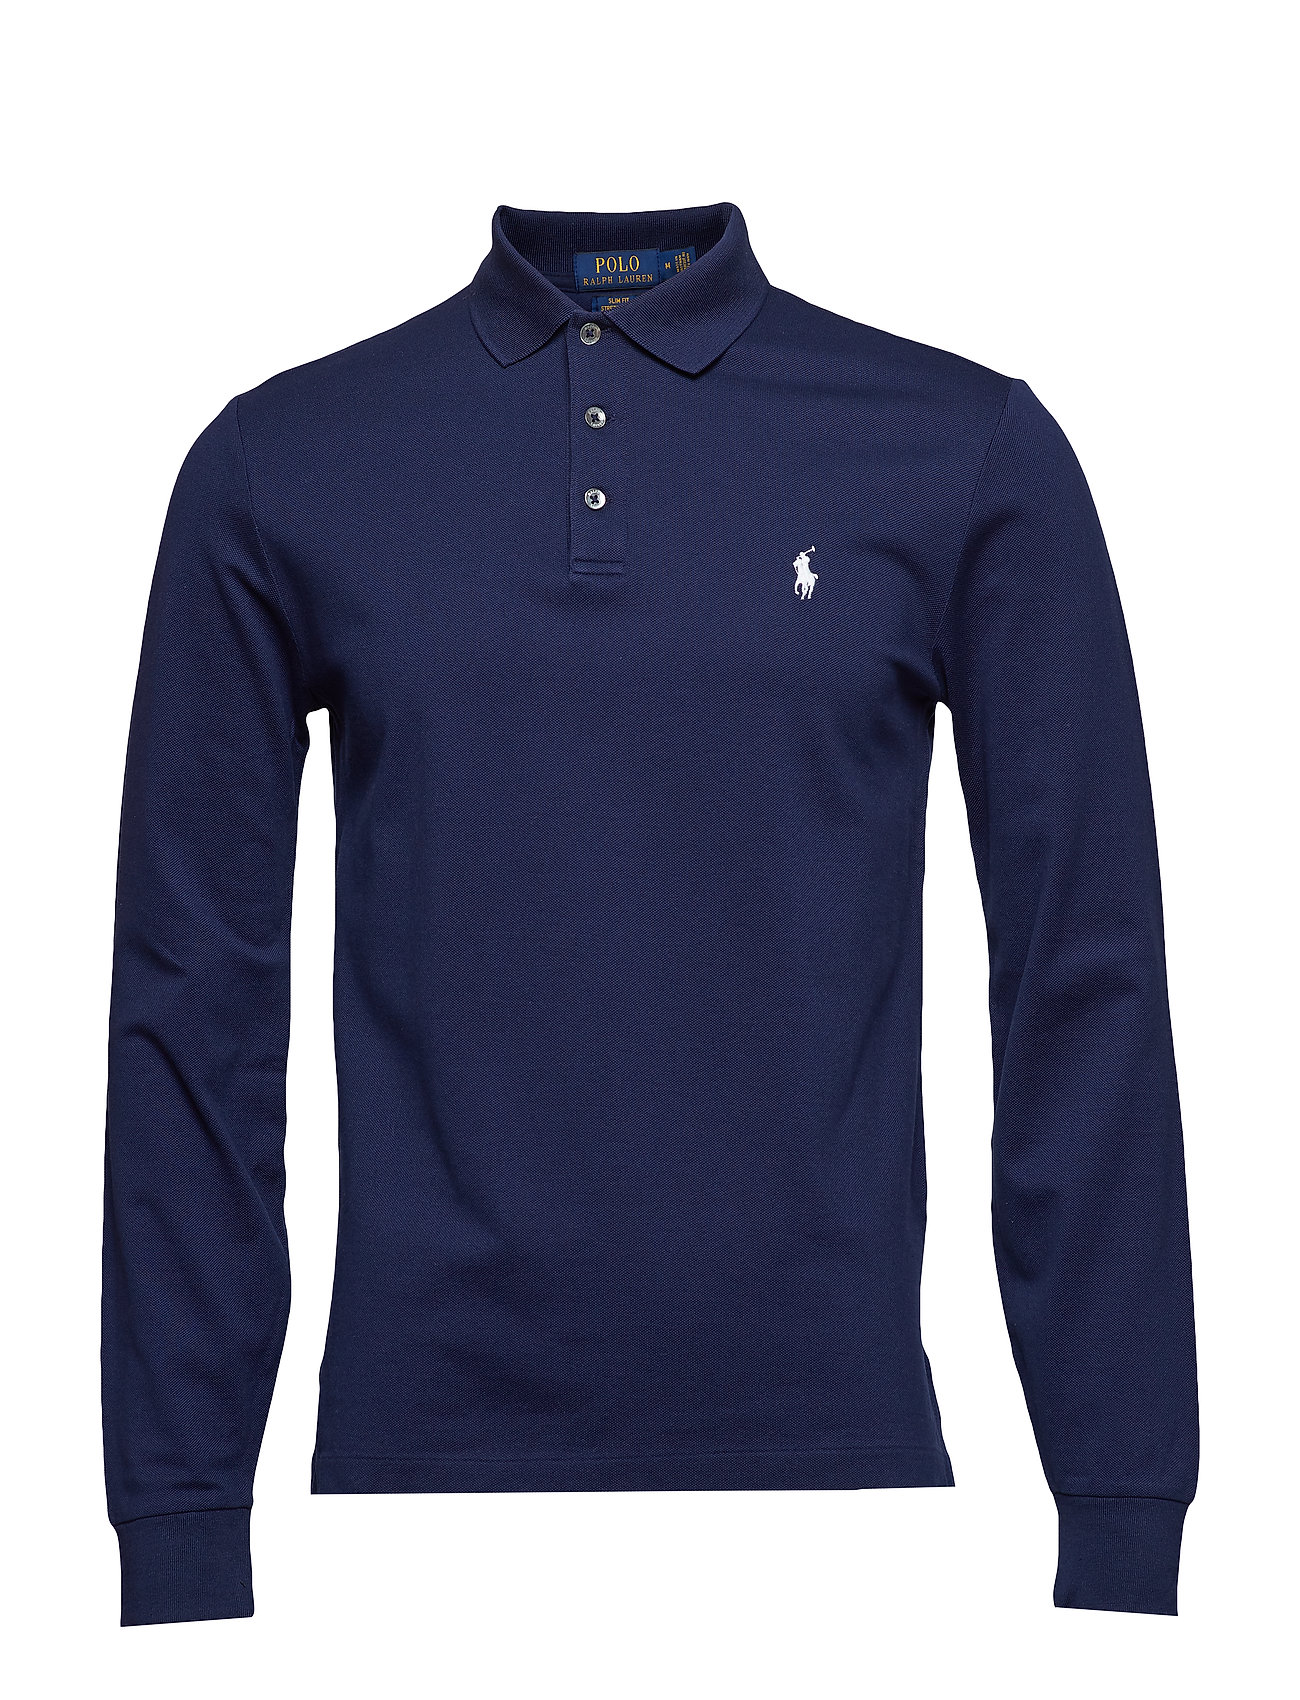 Polo Ralph Lauren LSKCSLMM4-LONG SLEEVE-KNIT - FRENCH NAVY